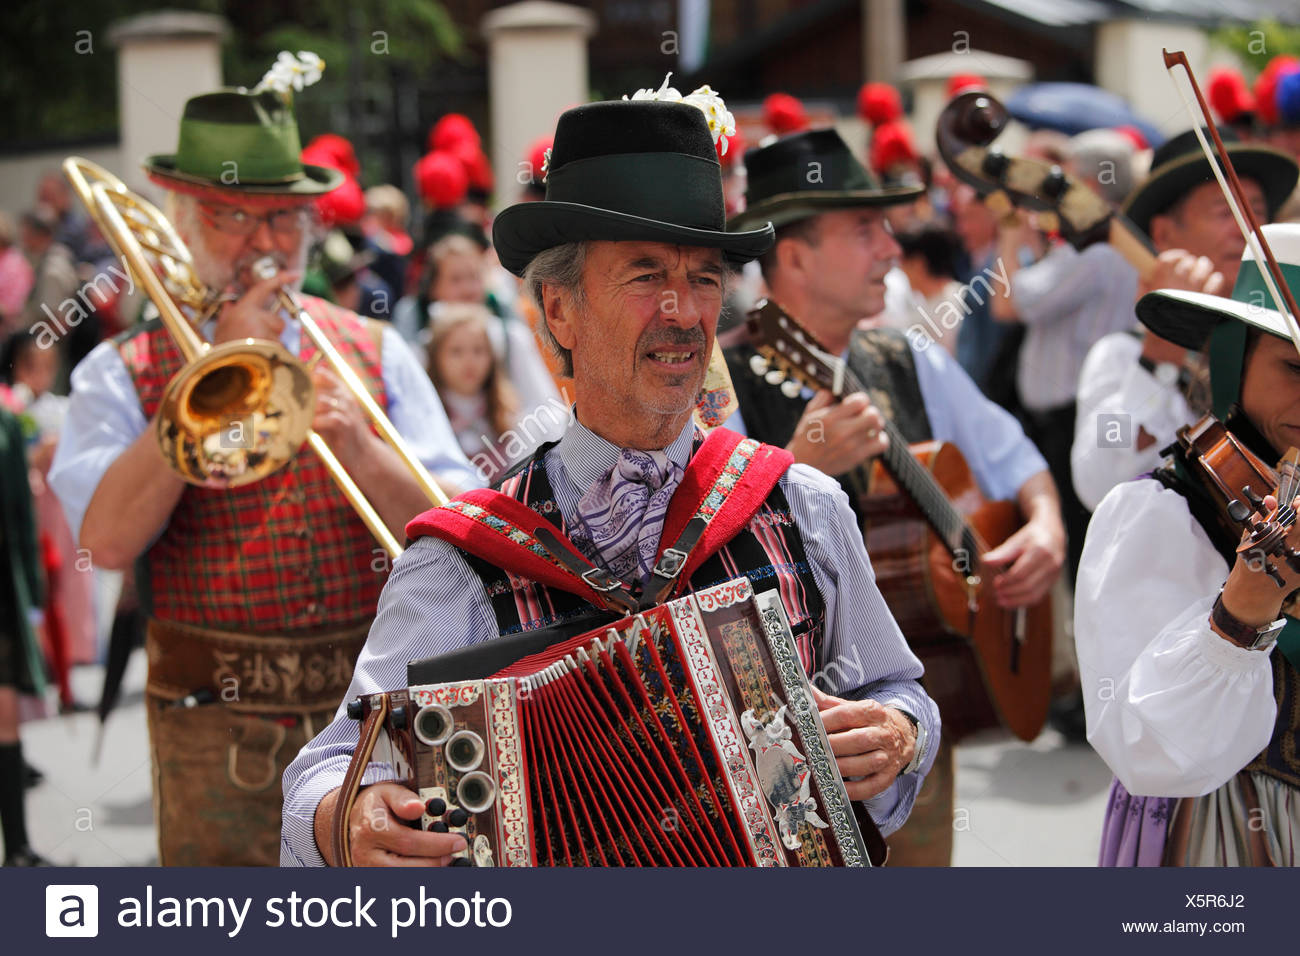 Folk bank, Narzissenfest Narcissus Festival in Bad Aussee, Ausseer Land, Salzkammergut area, Styria, Austria, Europe - Stock Image